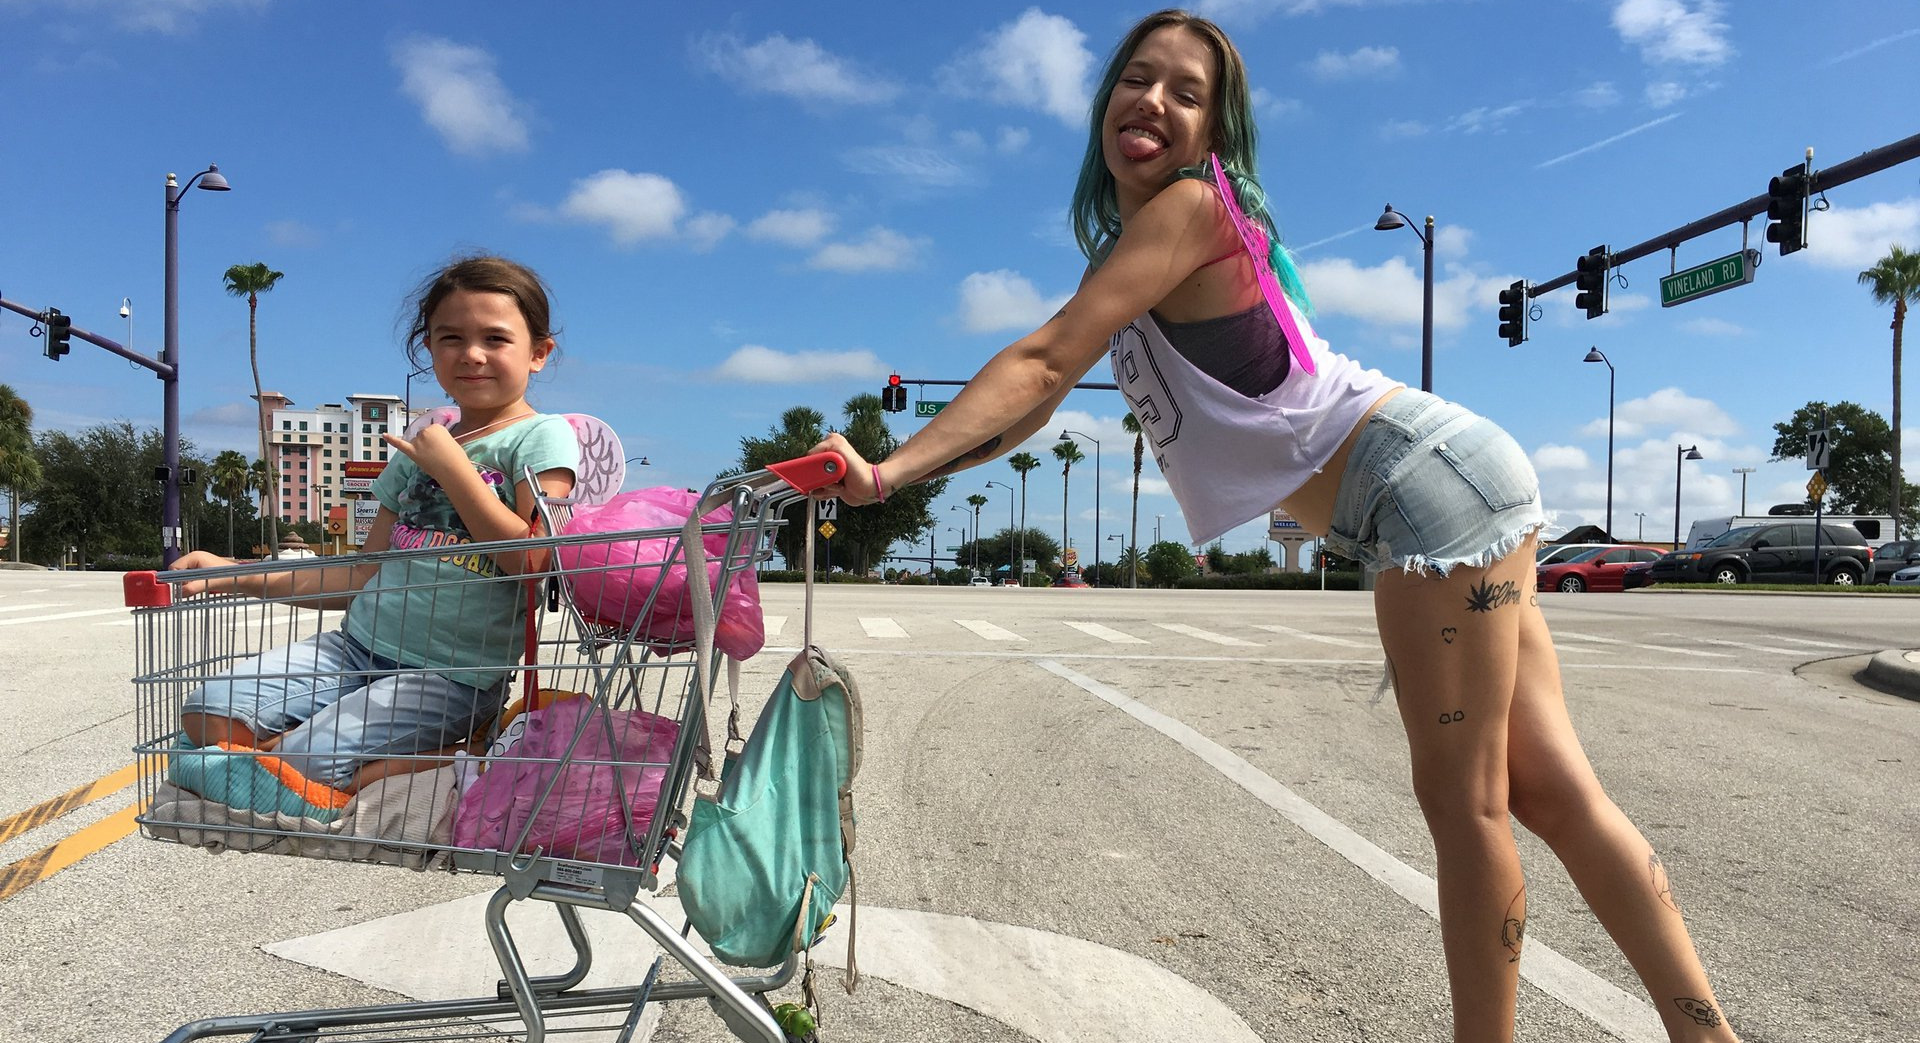 The Florida Project: Hard times at the Magic Castle.